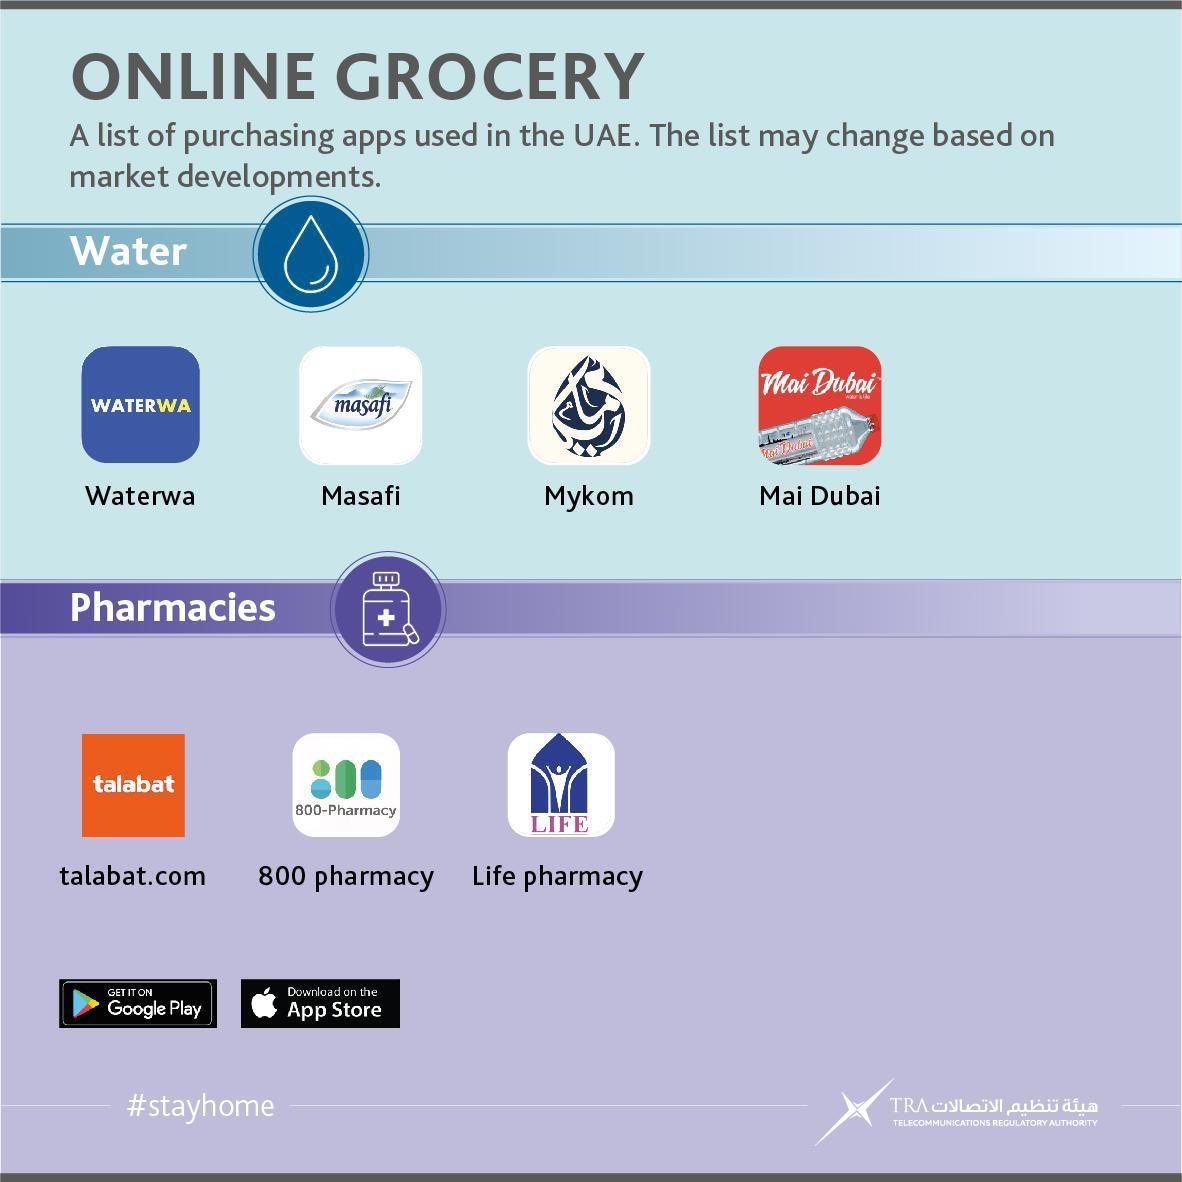 List of Online Grocery Apps so You Can Order Your Needs to Stay Home